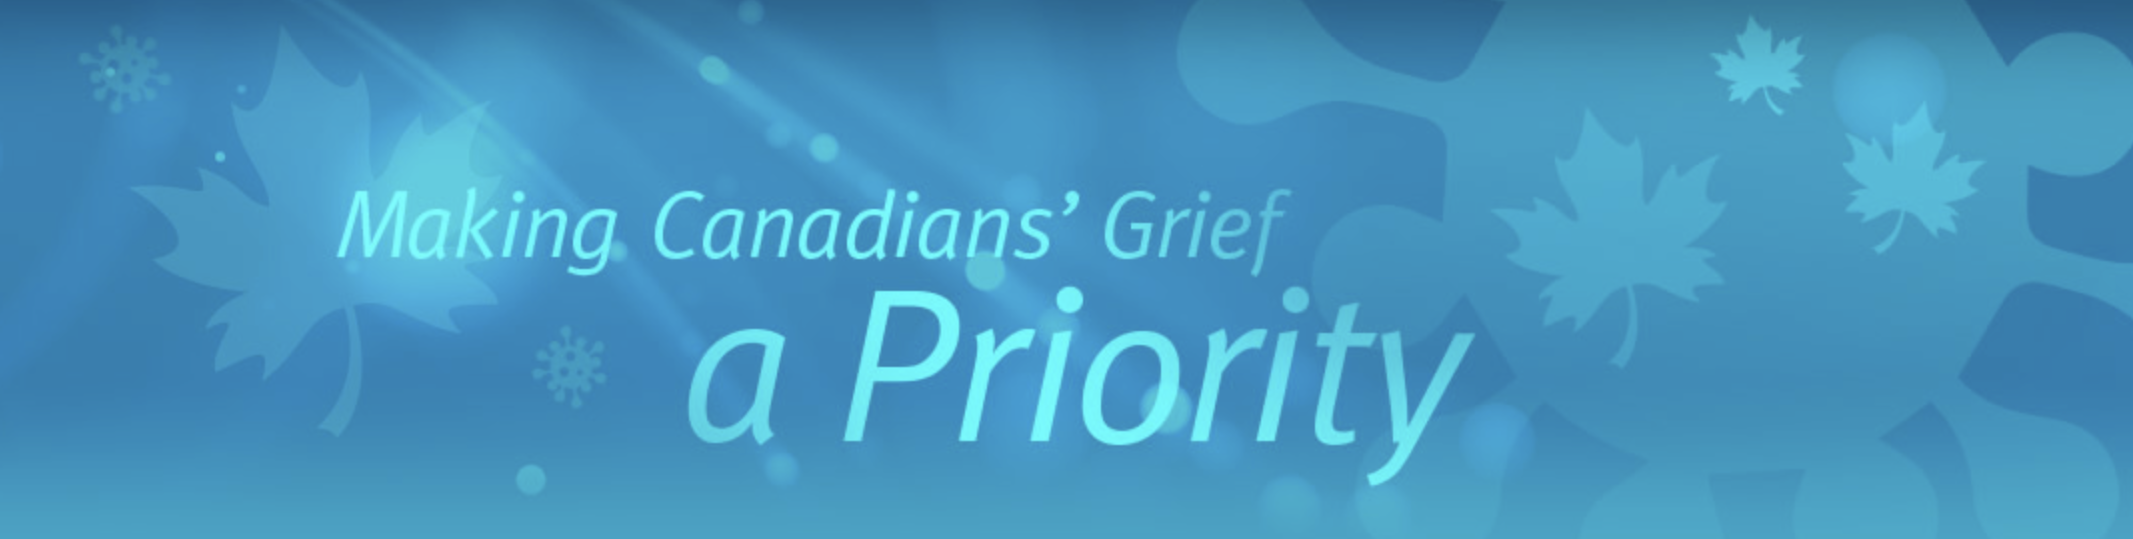 Making Canadians' Grief a Priority